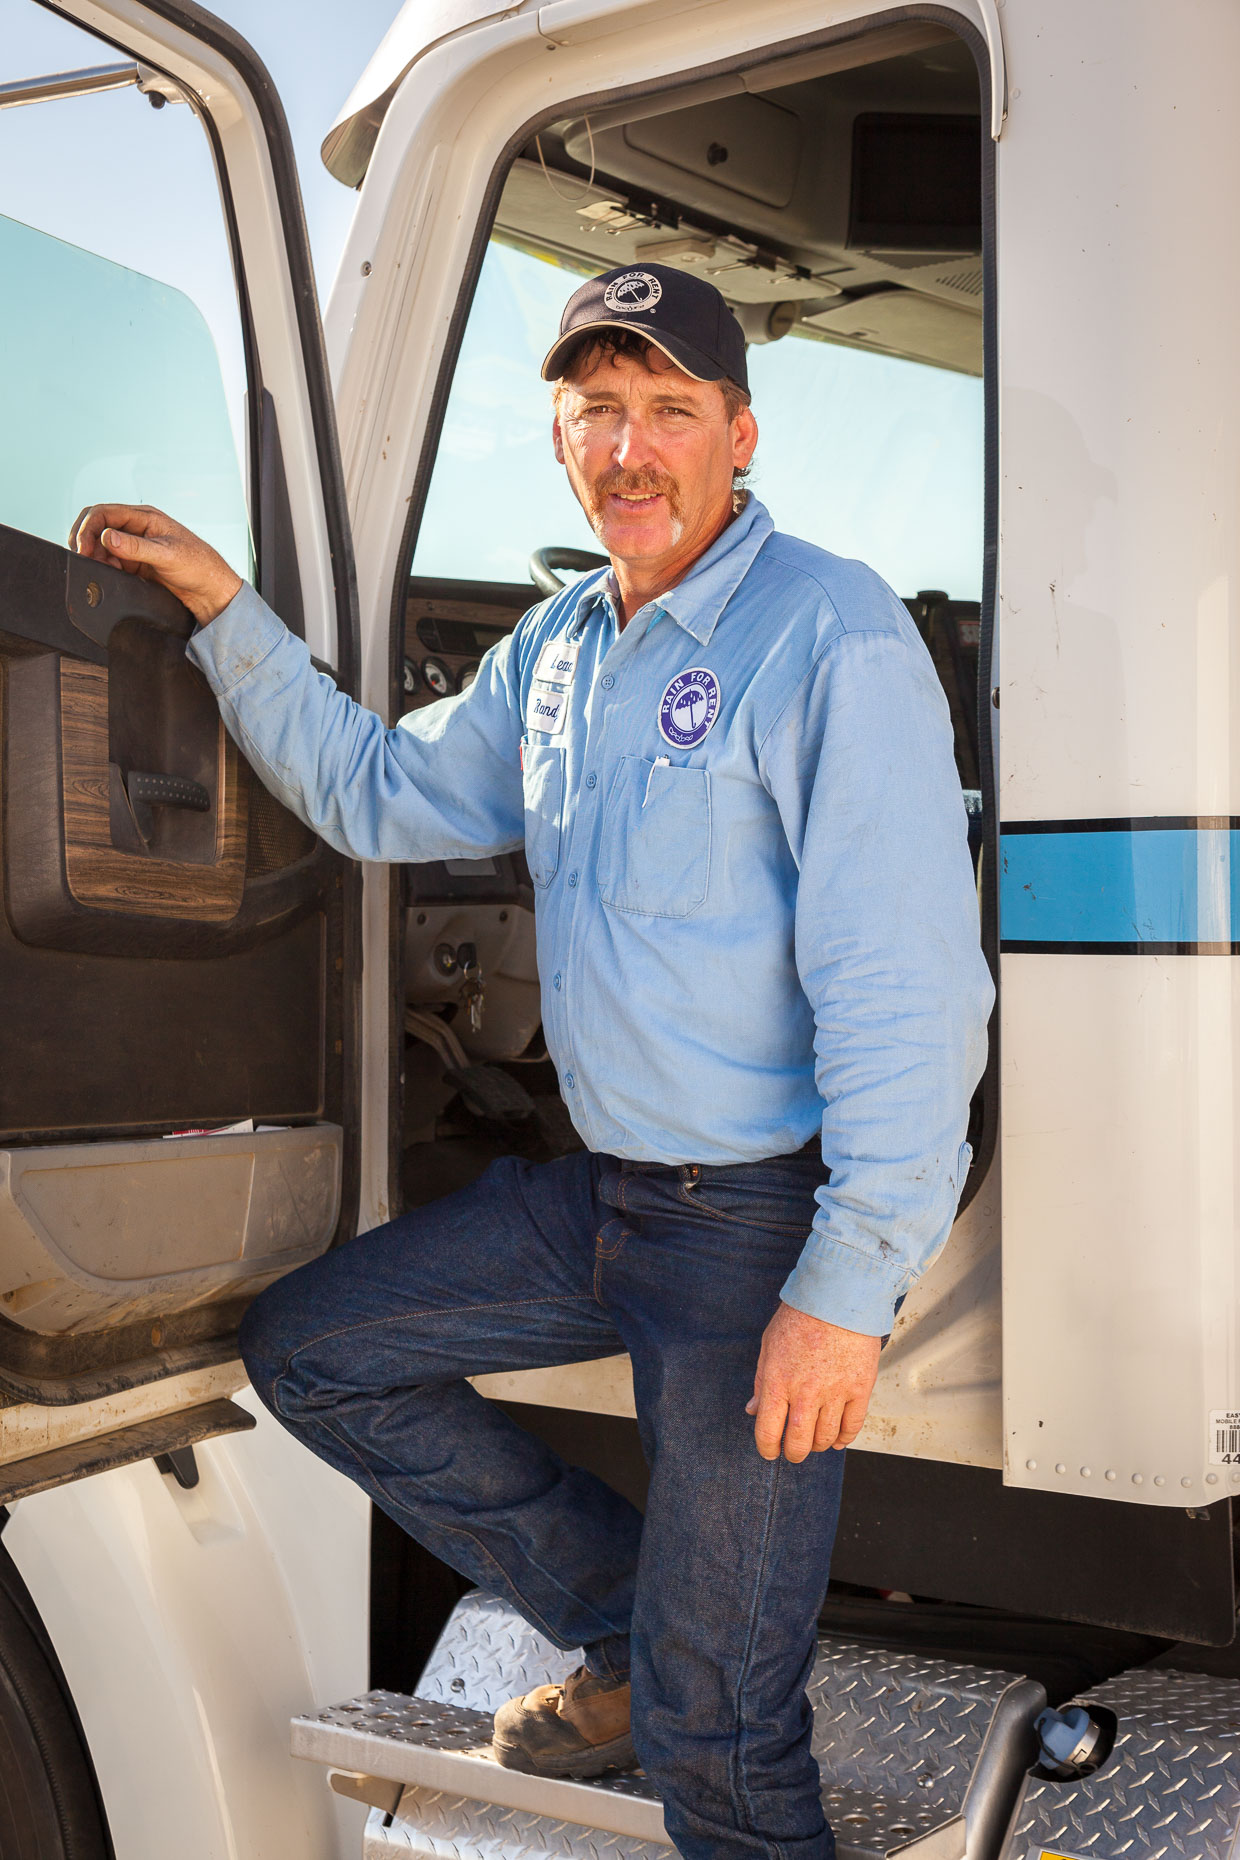 Environmental portrait of truck driver standing in open truck cab by David Zaitz